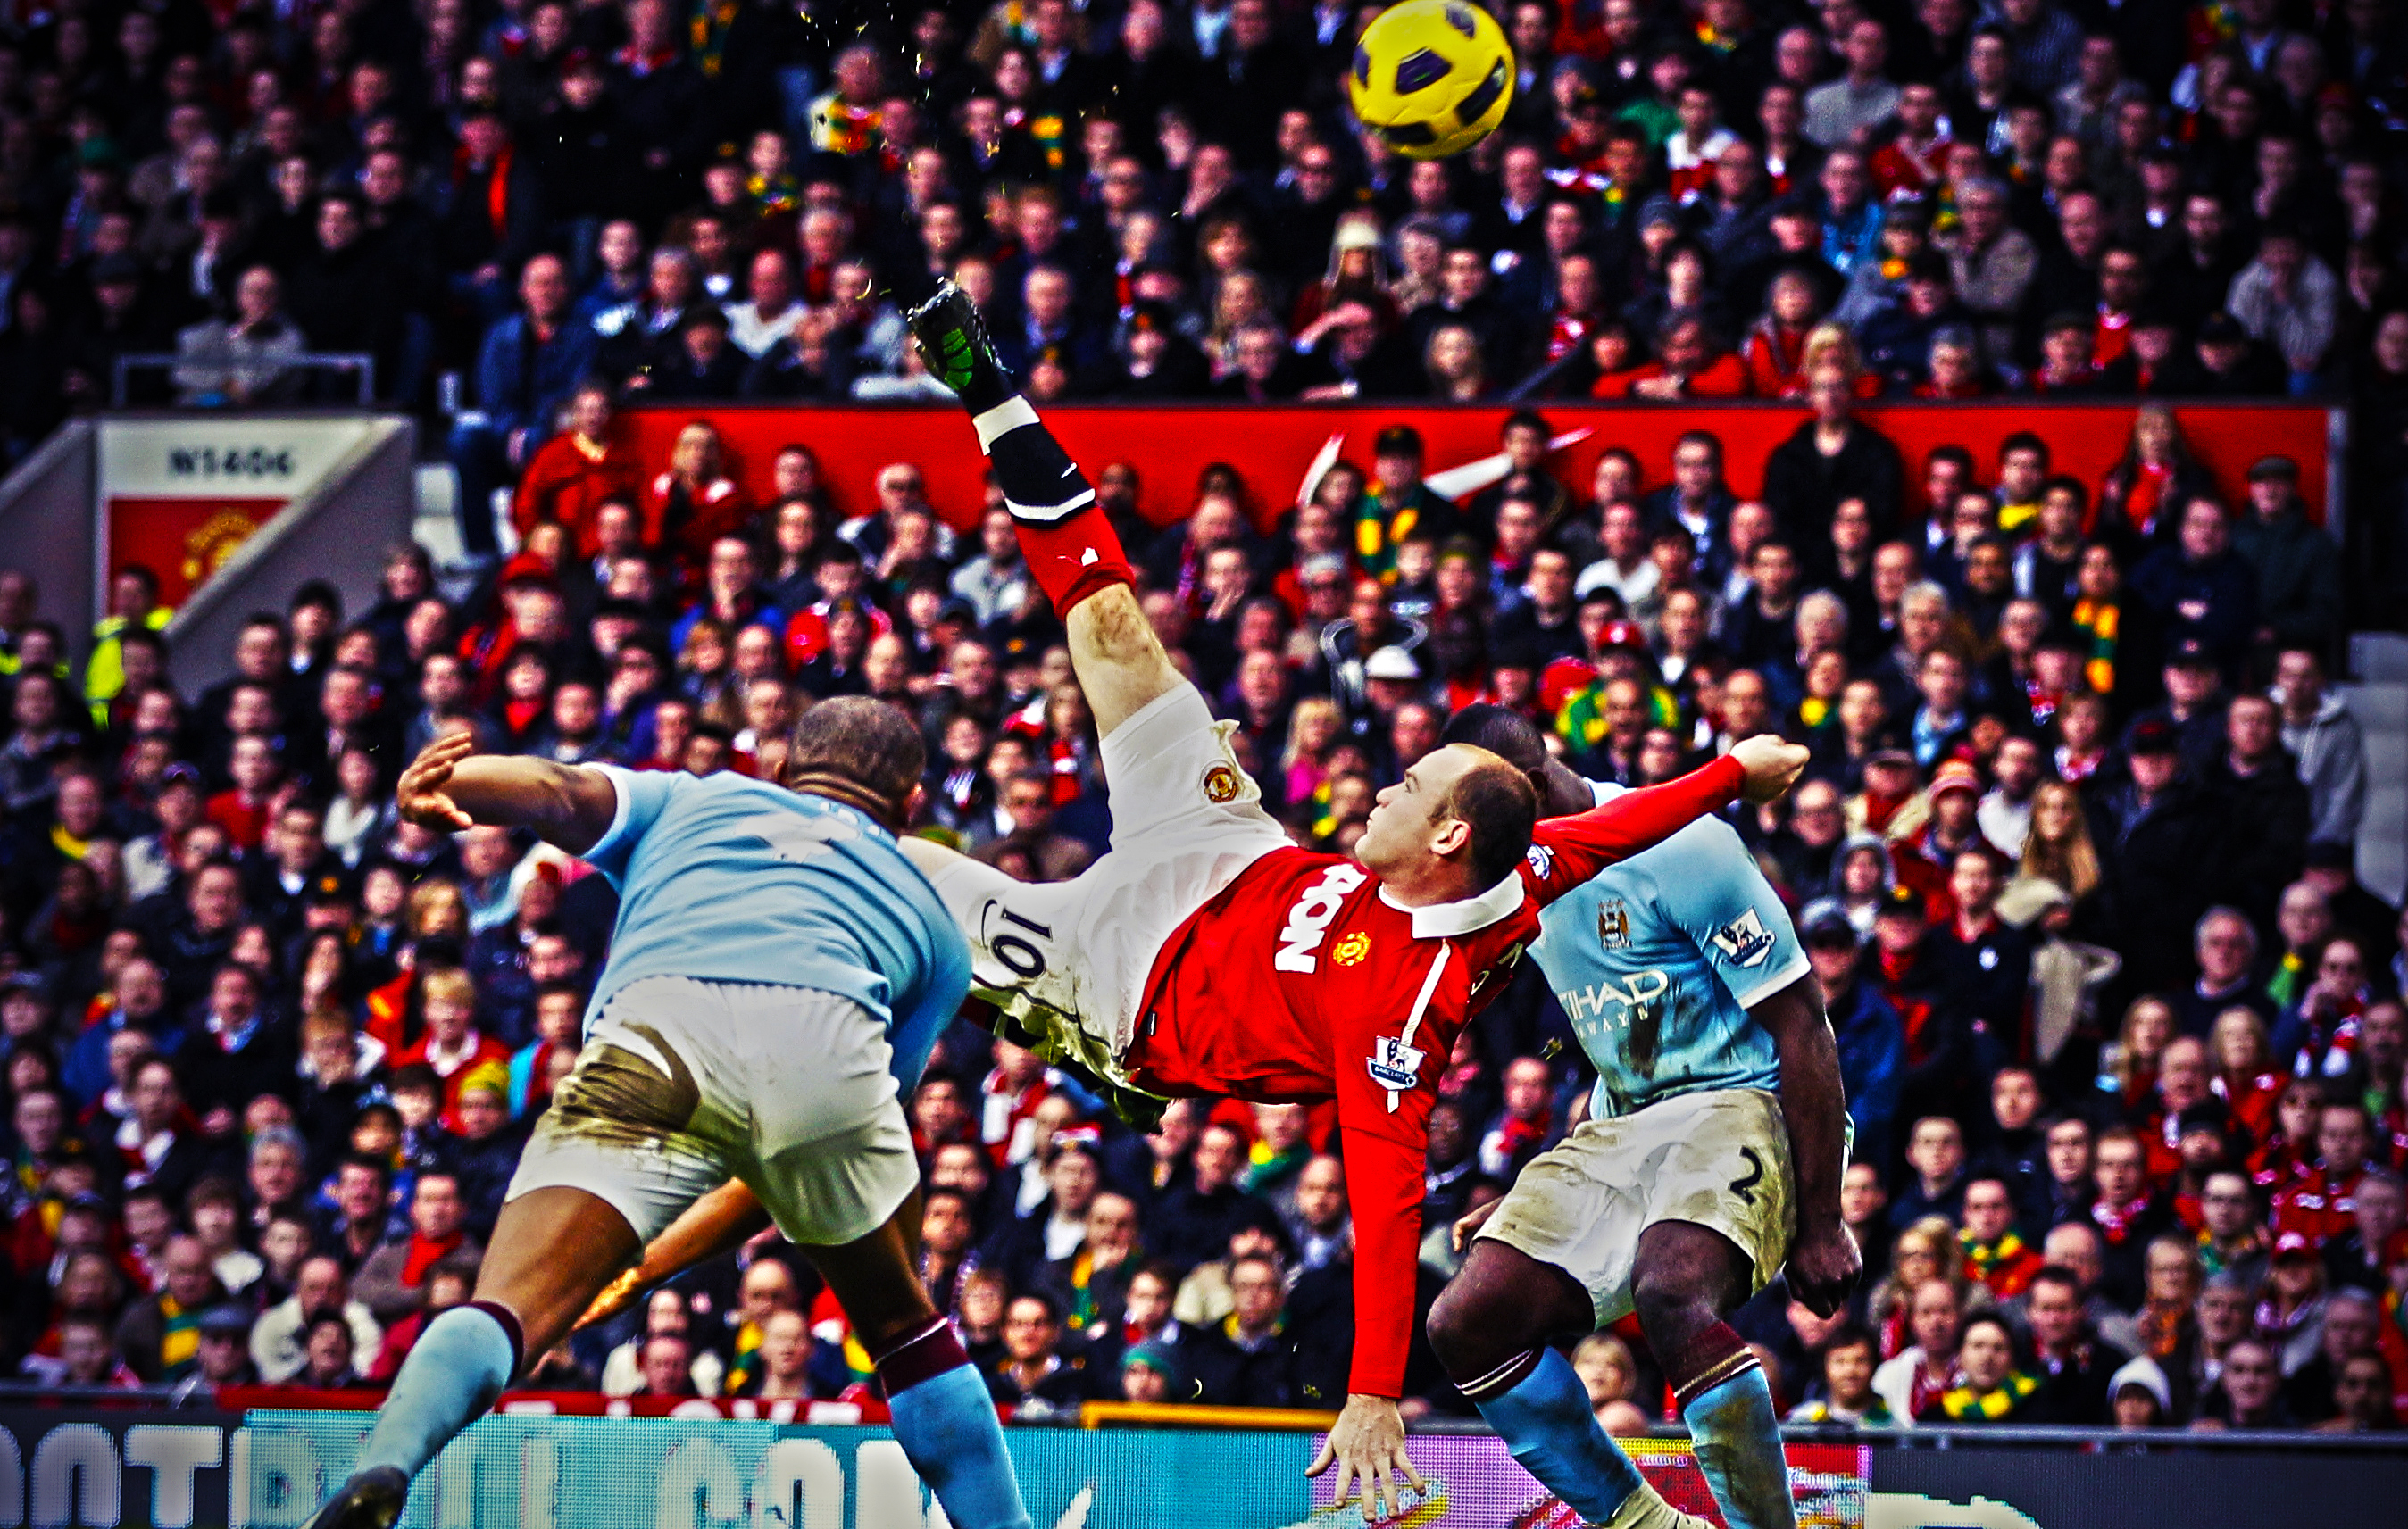 Wayne Rooney Goal Vs Man City Wallpaper | GlobezHair